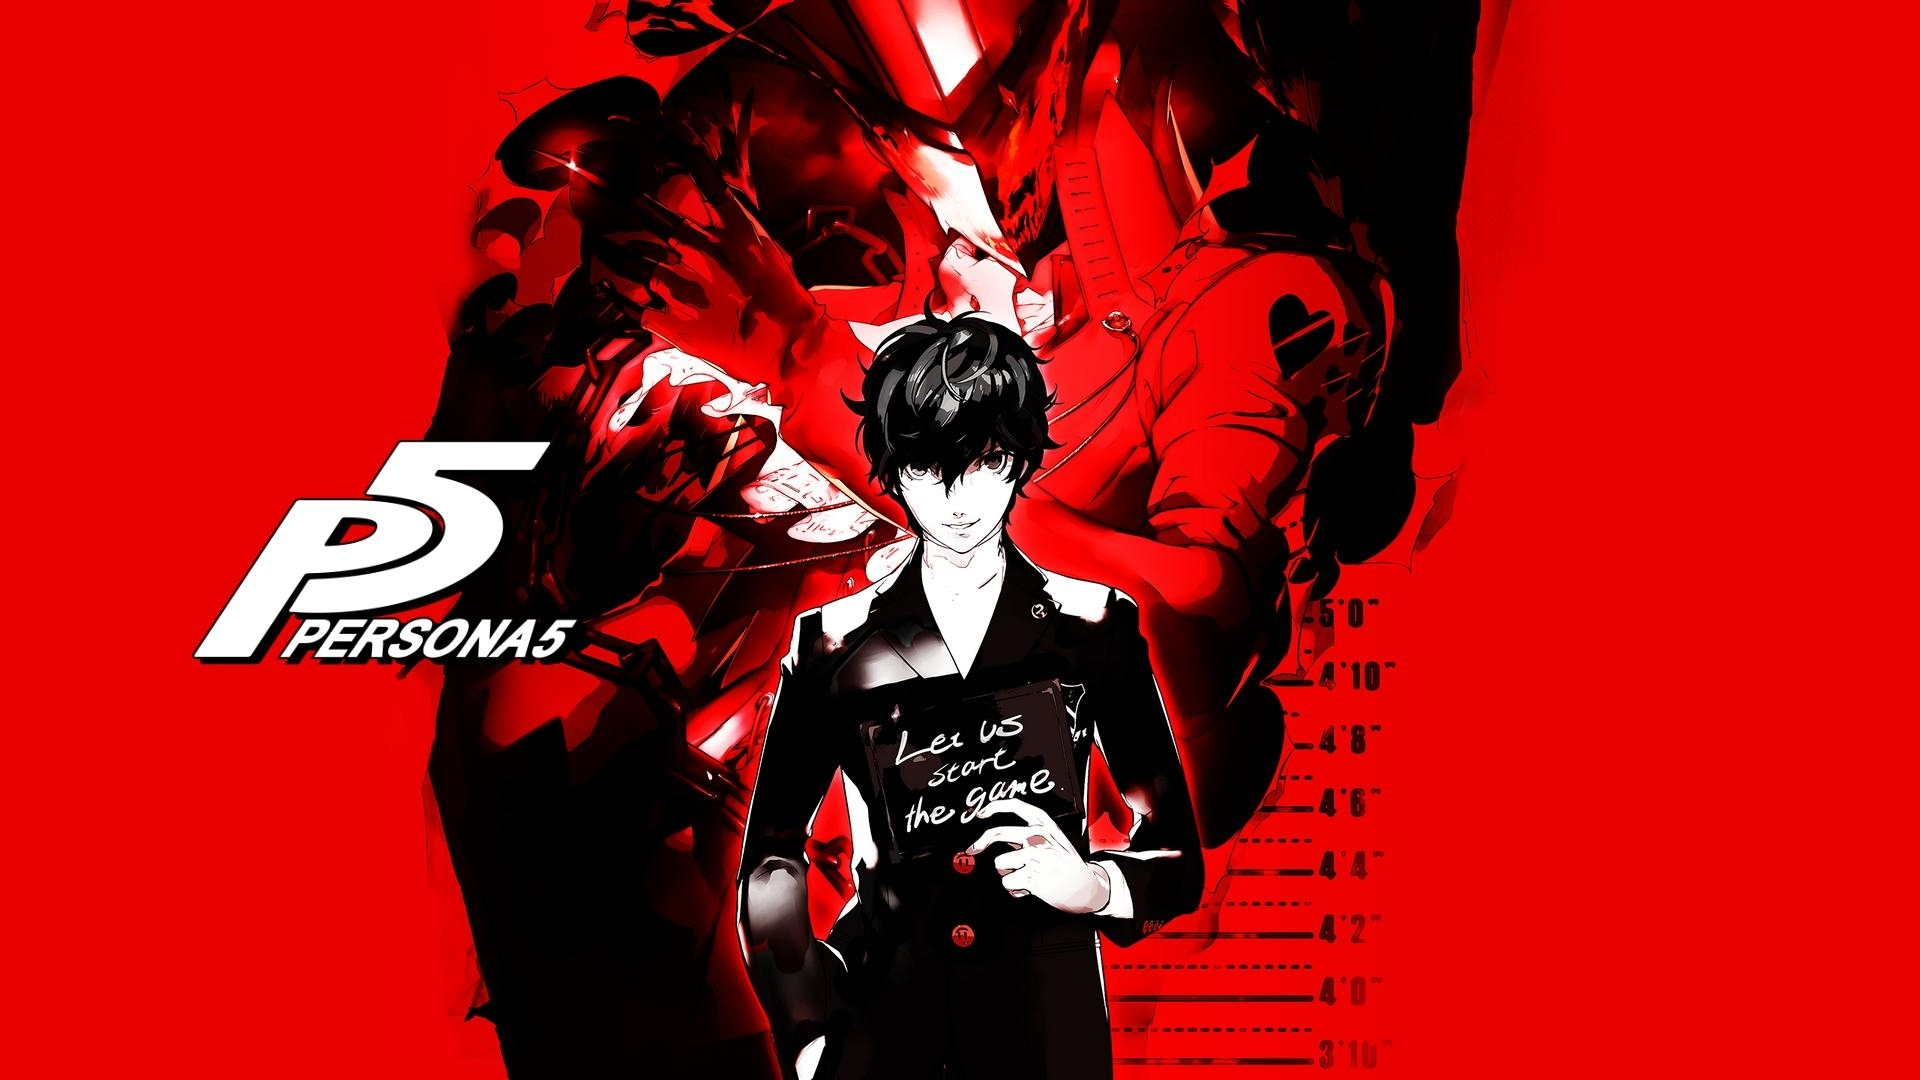 a 1920x1080 persona 5 wallpaper (full-screen capture taken from the